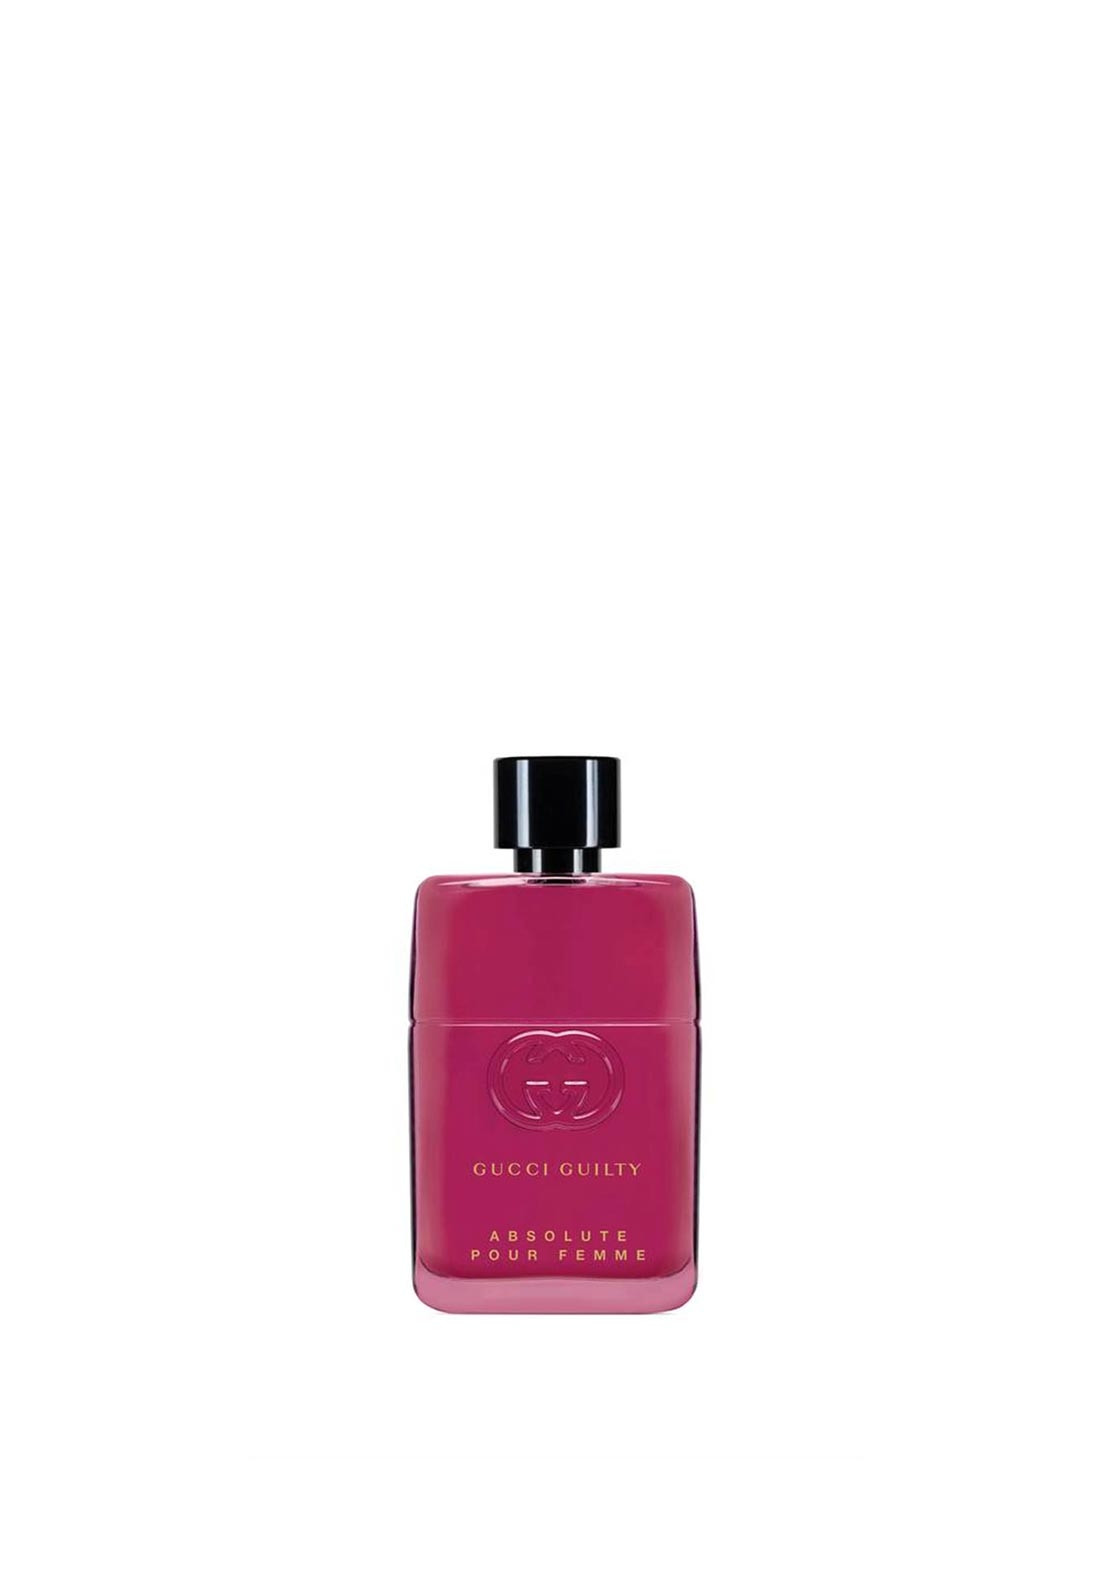 Gucci Guilty Absolute Eau De Parfum For Her Mcelhinneys